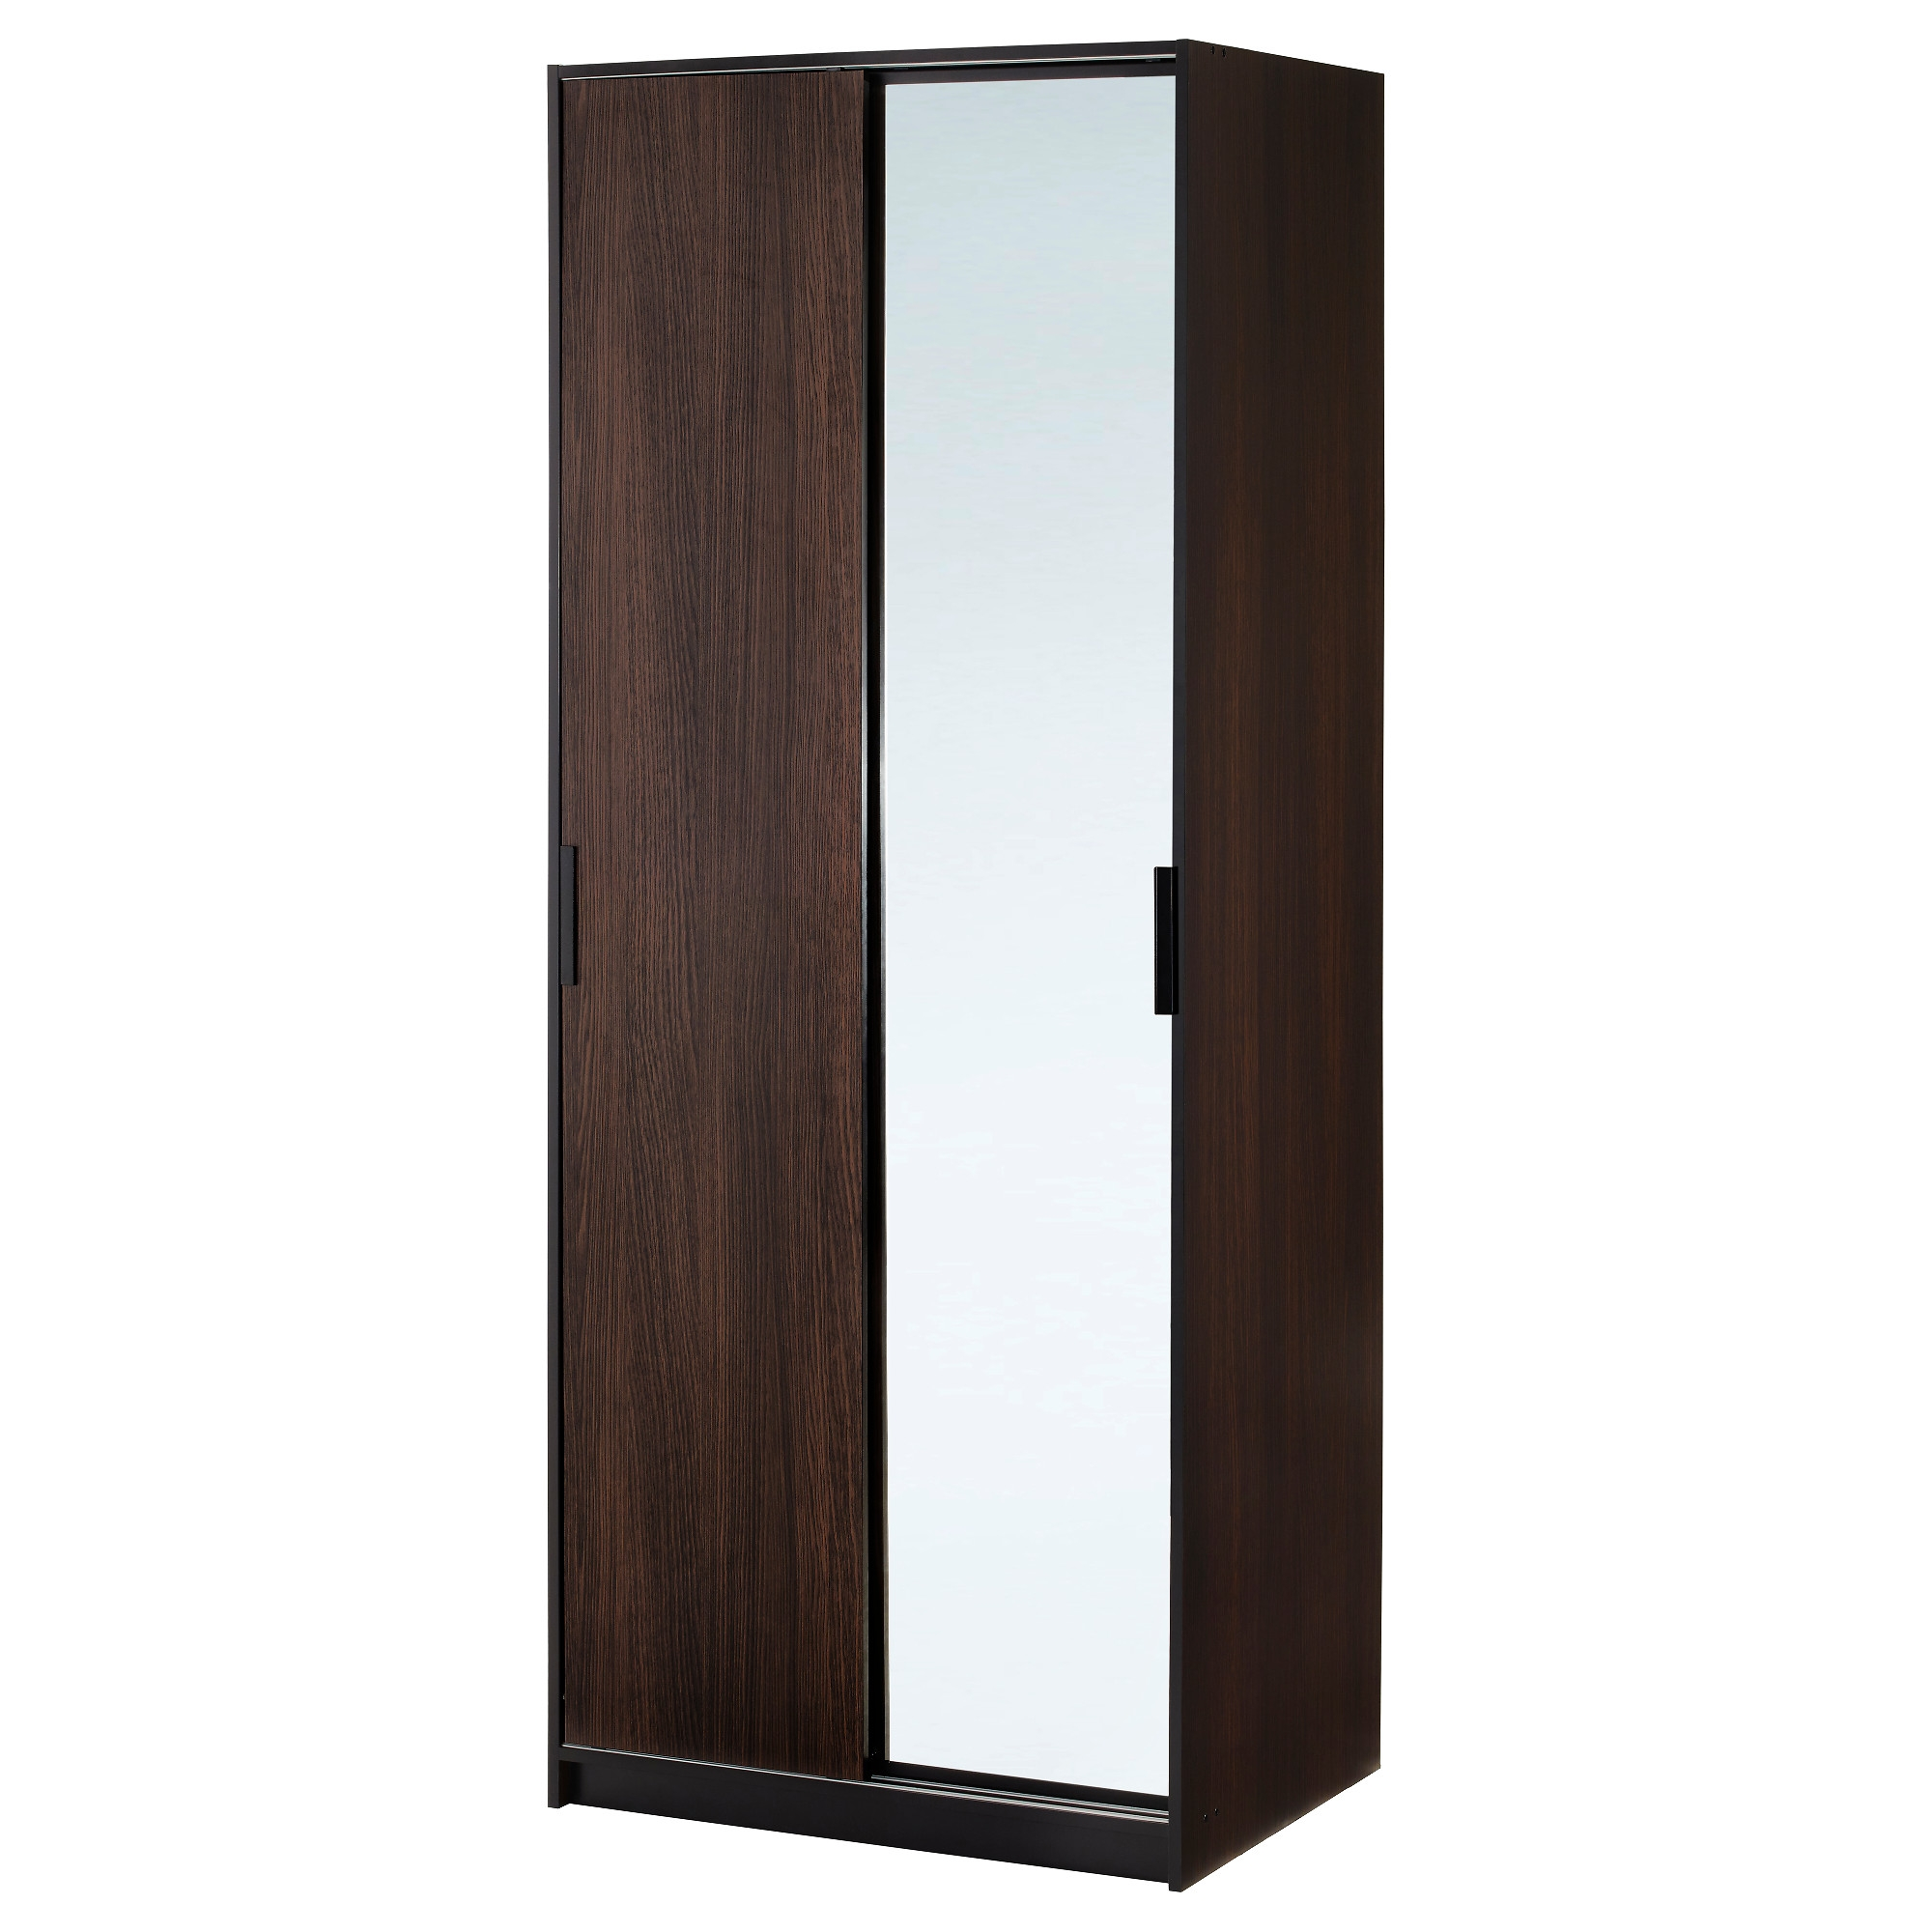 Wardrobes Armoires Closets Ikea Pertaining To Dark Wood Wardrobes (Image 15 of 15)